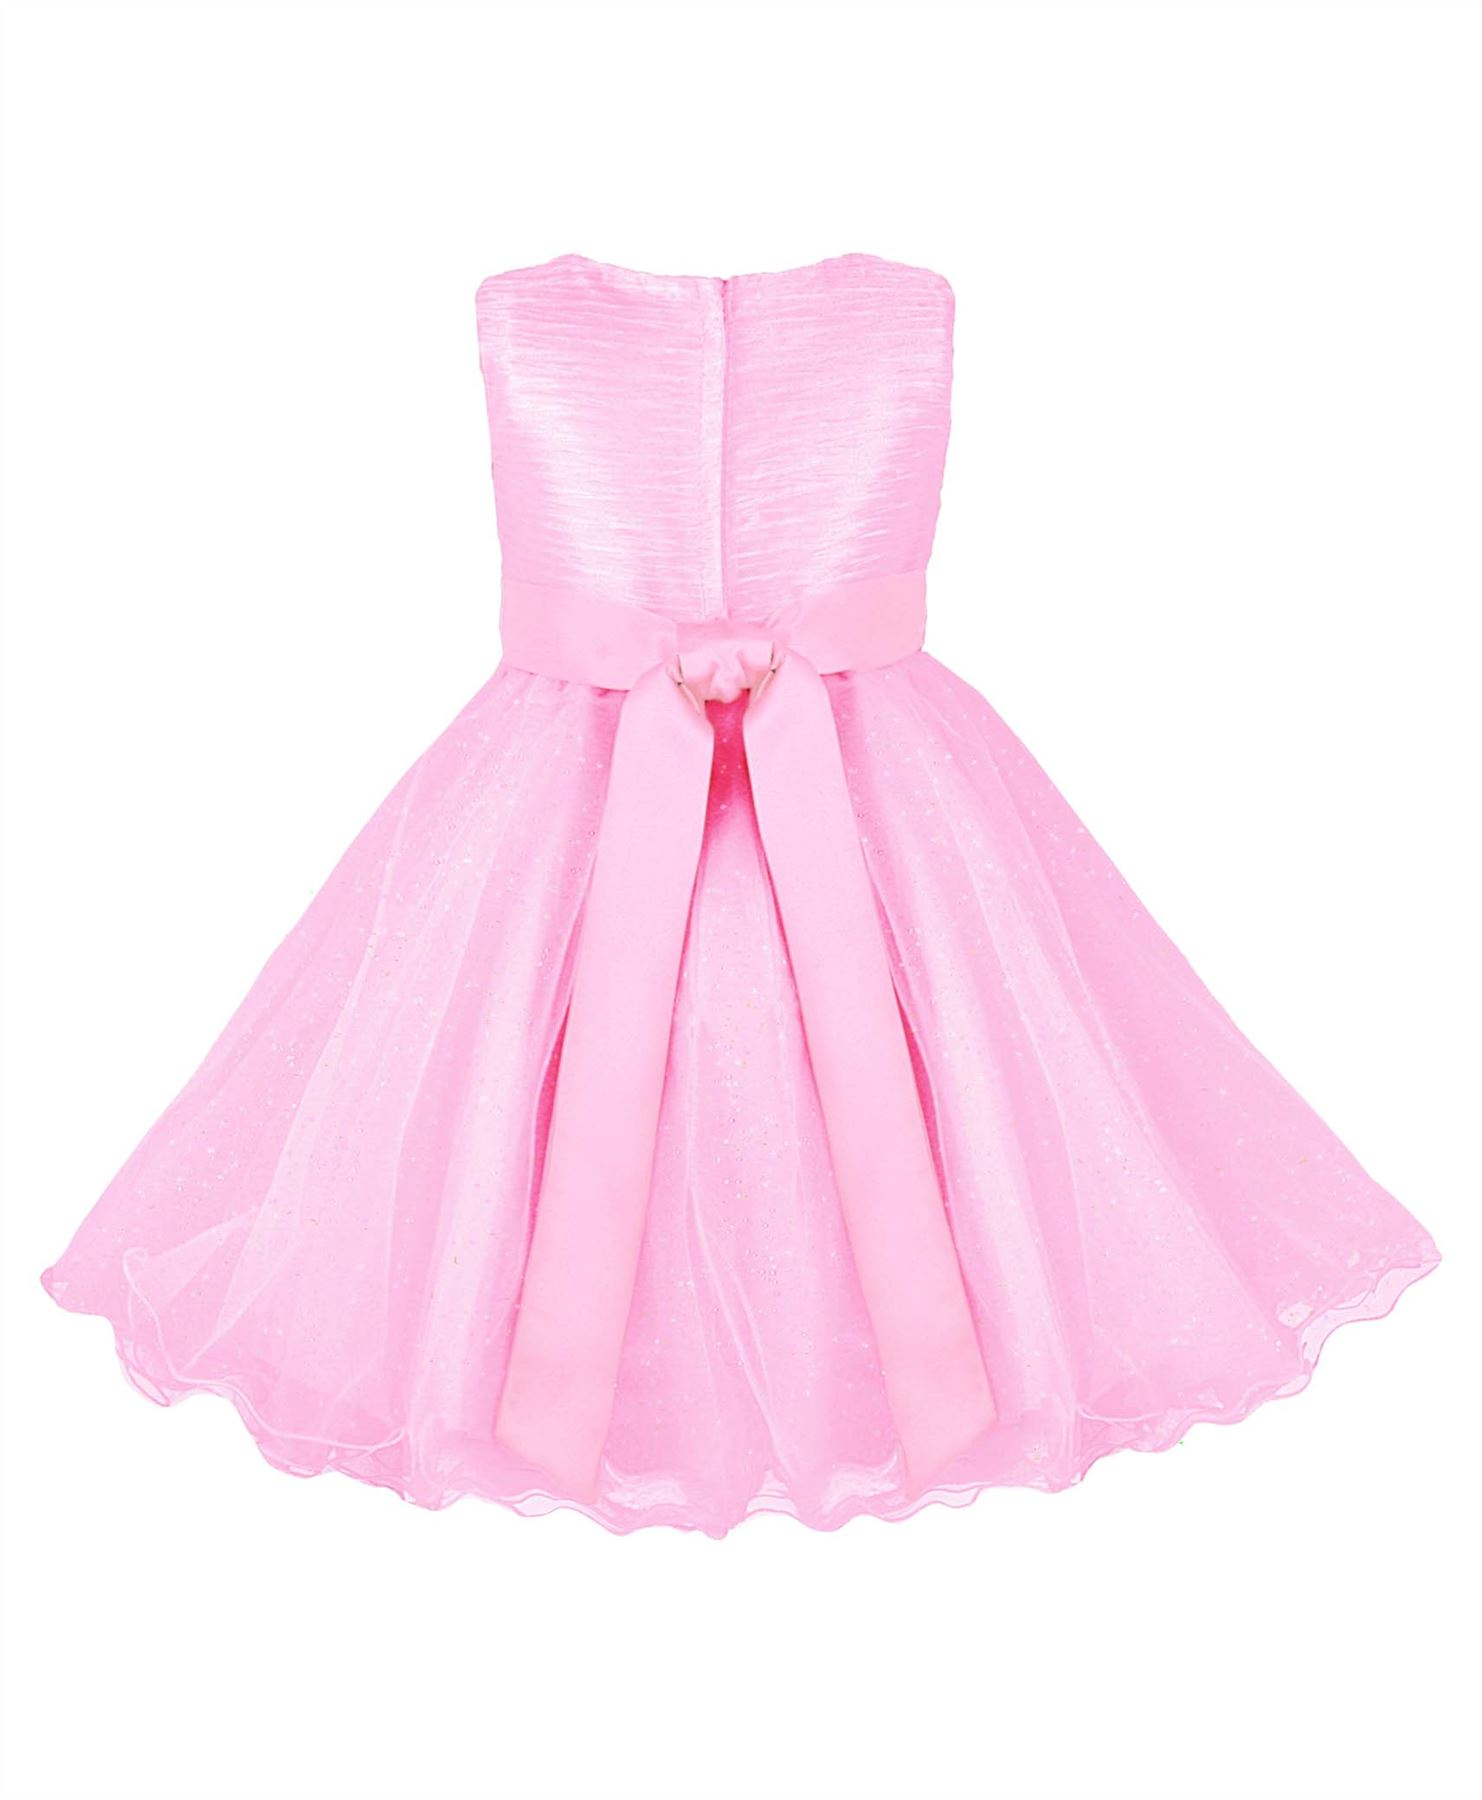 GIRLS TULLE PARTY DRESS BOW DETAIL FLOWER GIRL WEDDING PAGEANT ...